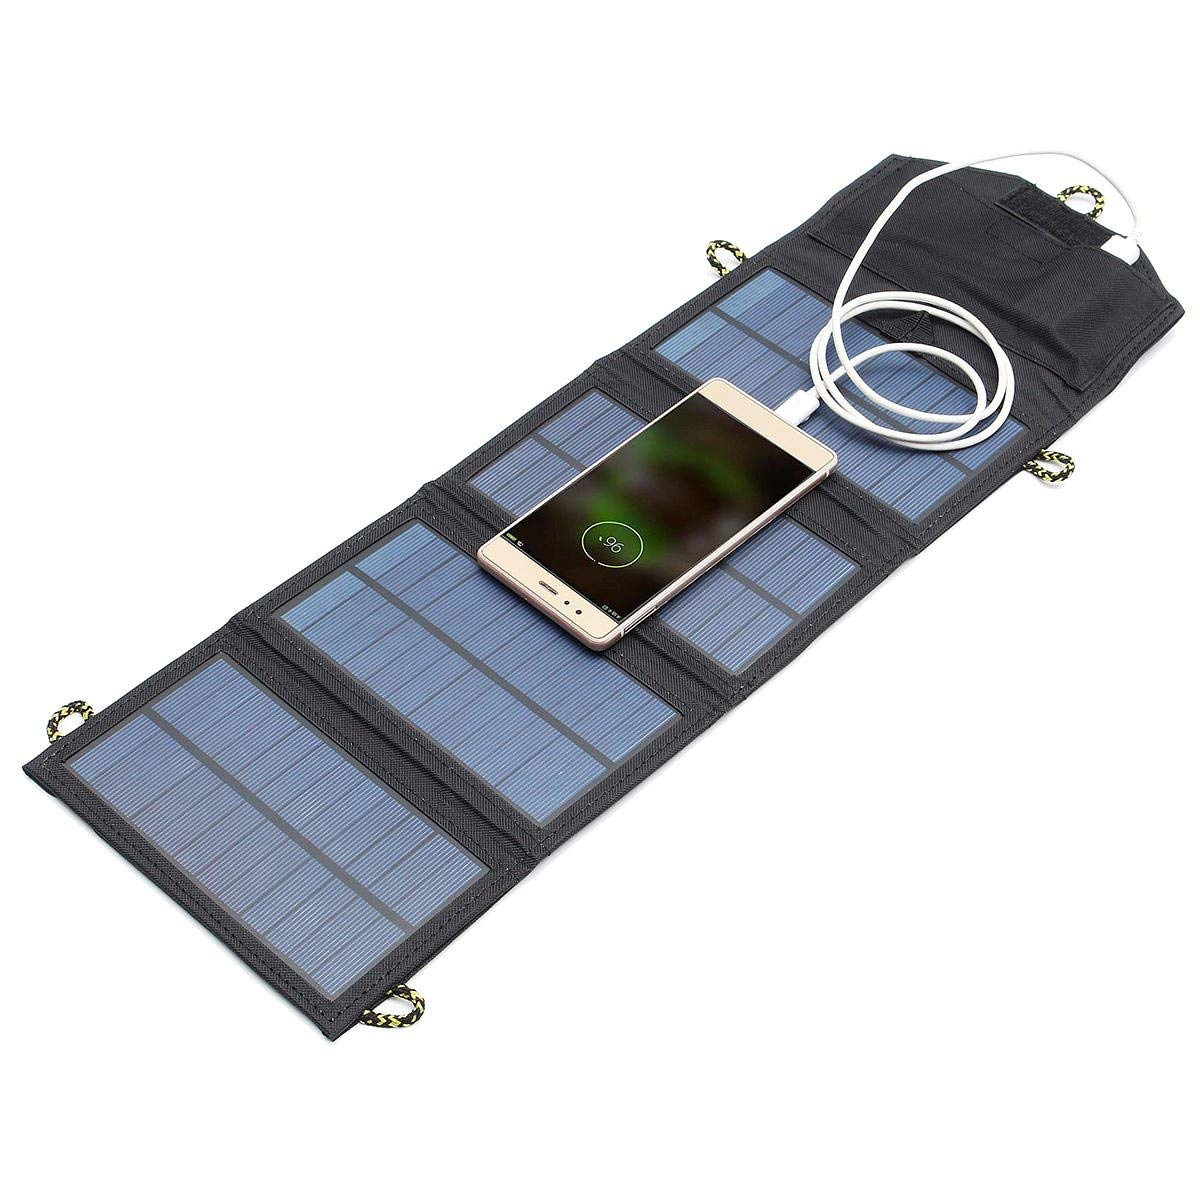 Solar Usb Charger - Solar Panel Usb Charger - 5V 7W Portable Solar Panel Outdoor Travel Emergency Foldable Charger With USB Port (Solar Power Usb Charger)